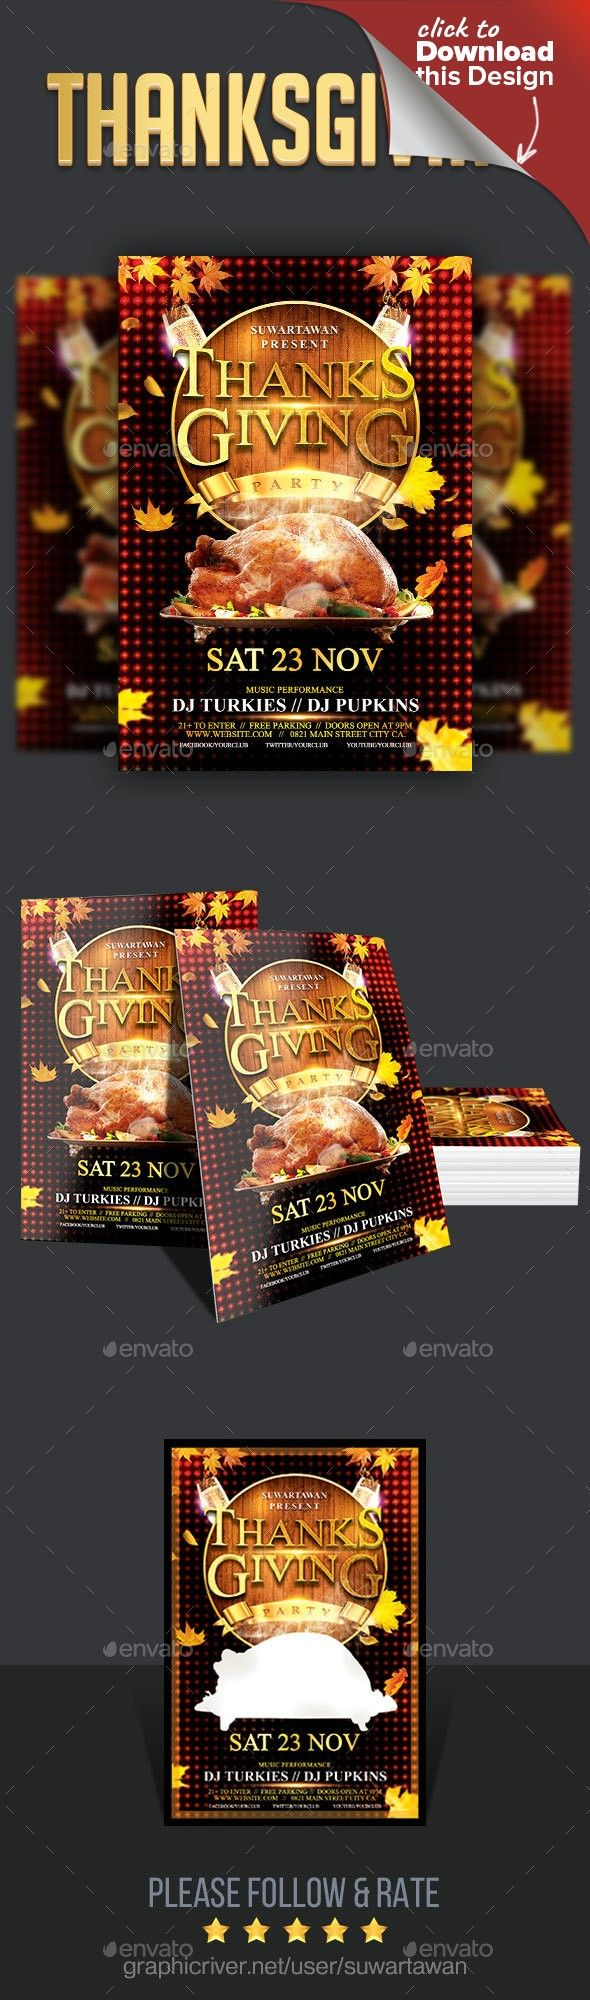 thanksgiving party thanksgiving parties flyer template and psd